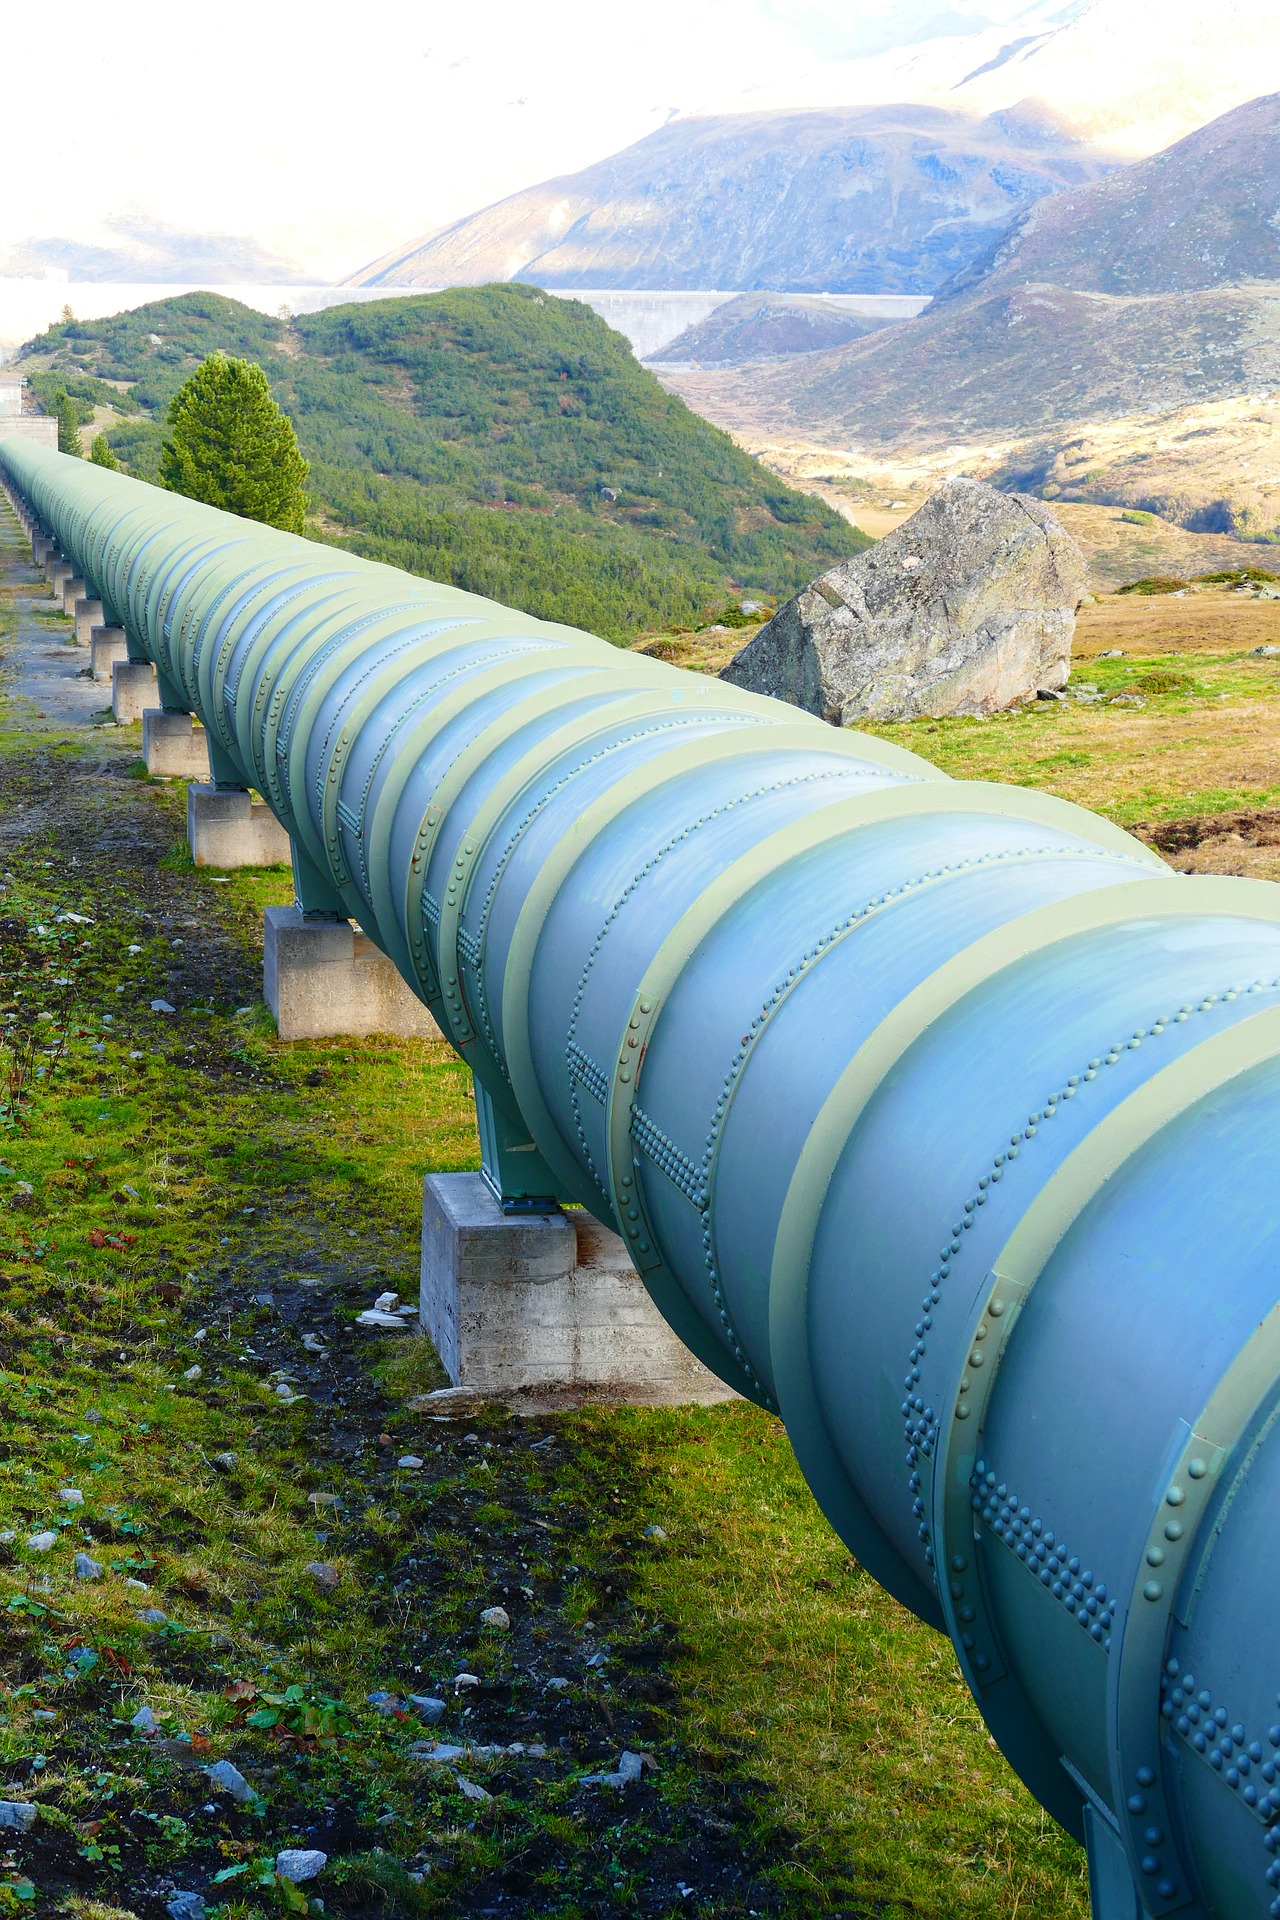 pipeline stretching into the distance